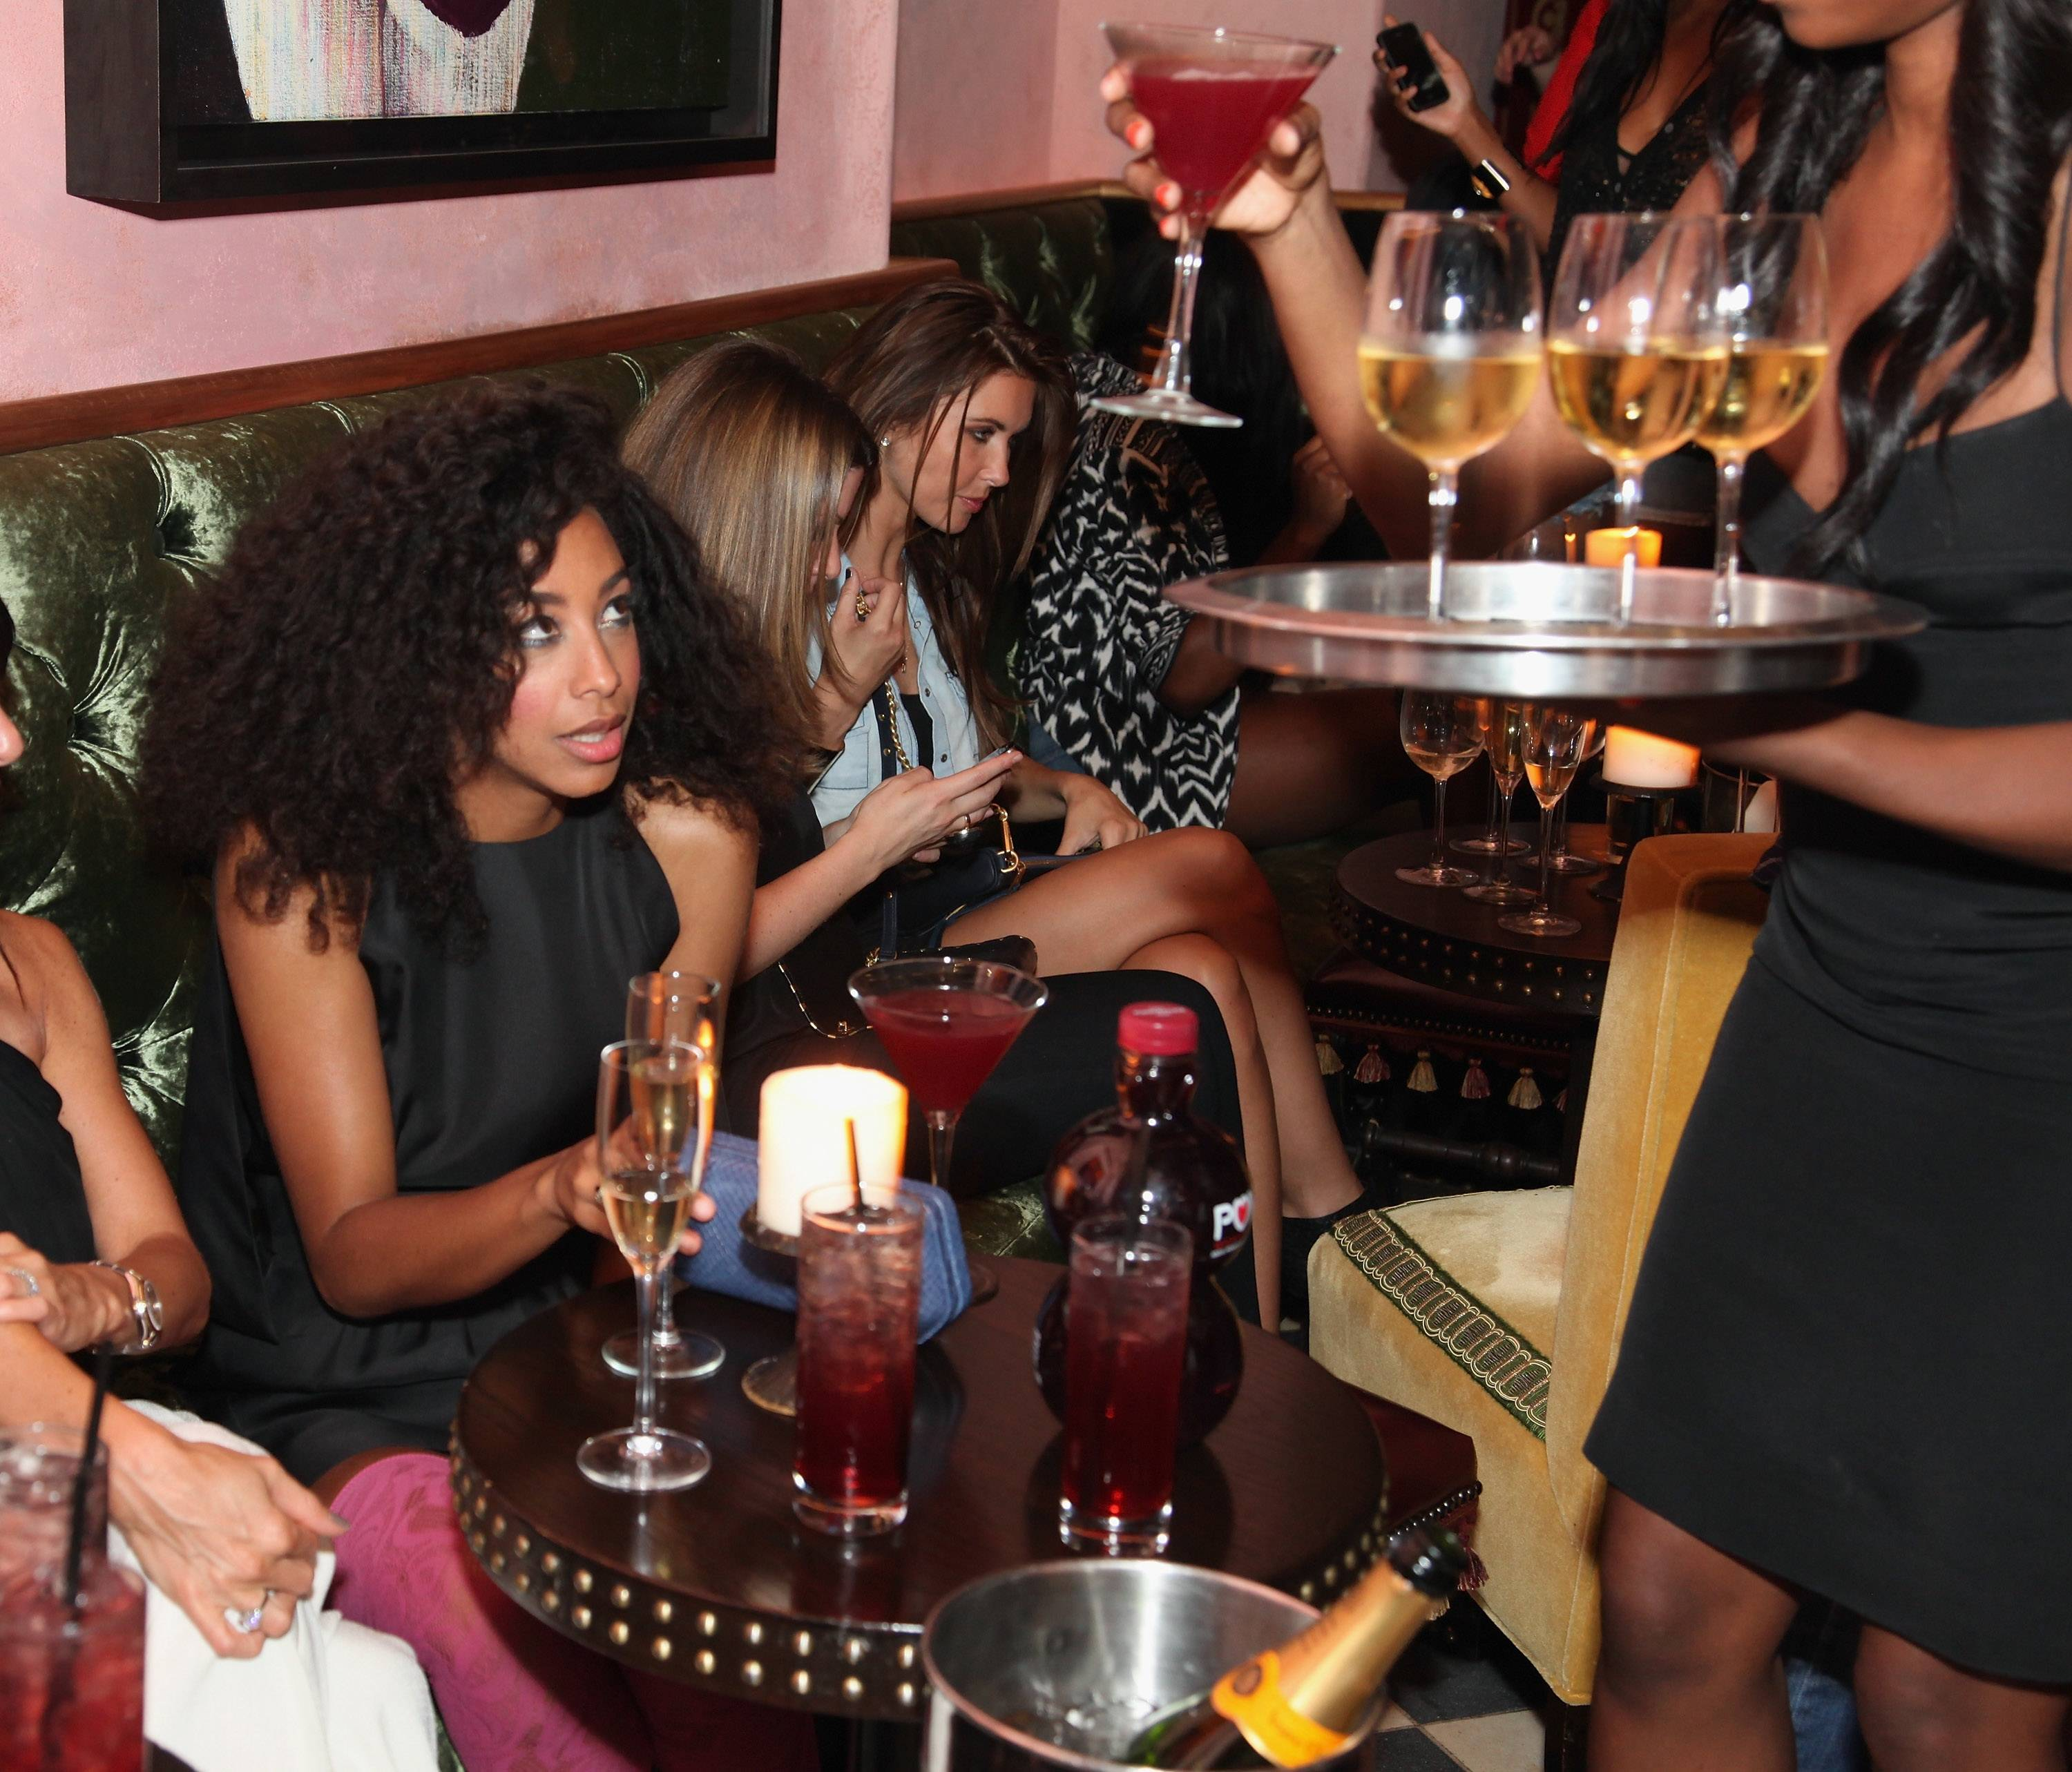 pomCorinne Bailey Rae & Audrina Patridge at the Rebecca Minkoff After Party Hosted by POM Wonderful at the Rose Bar, Gramercy Park Hotel